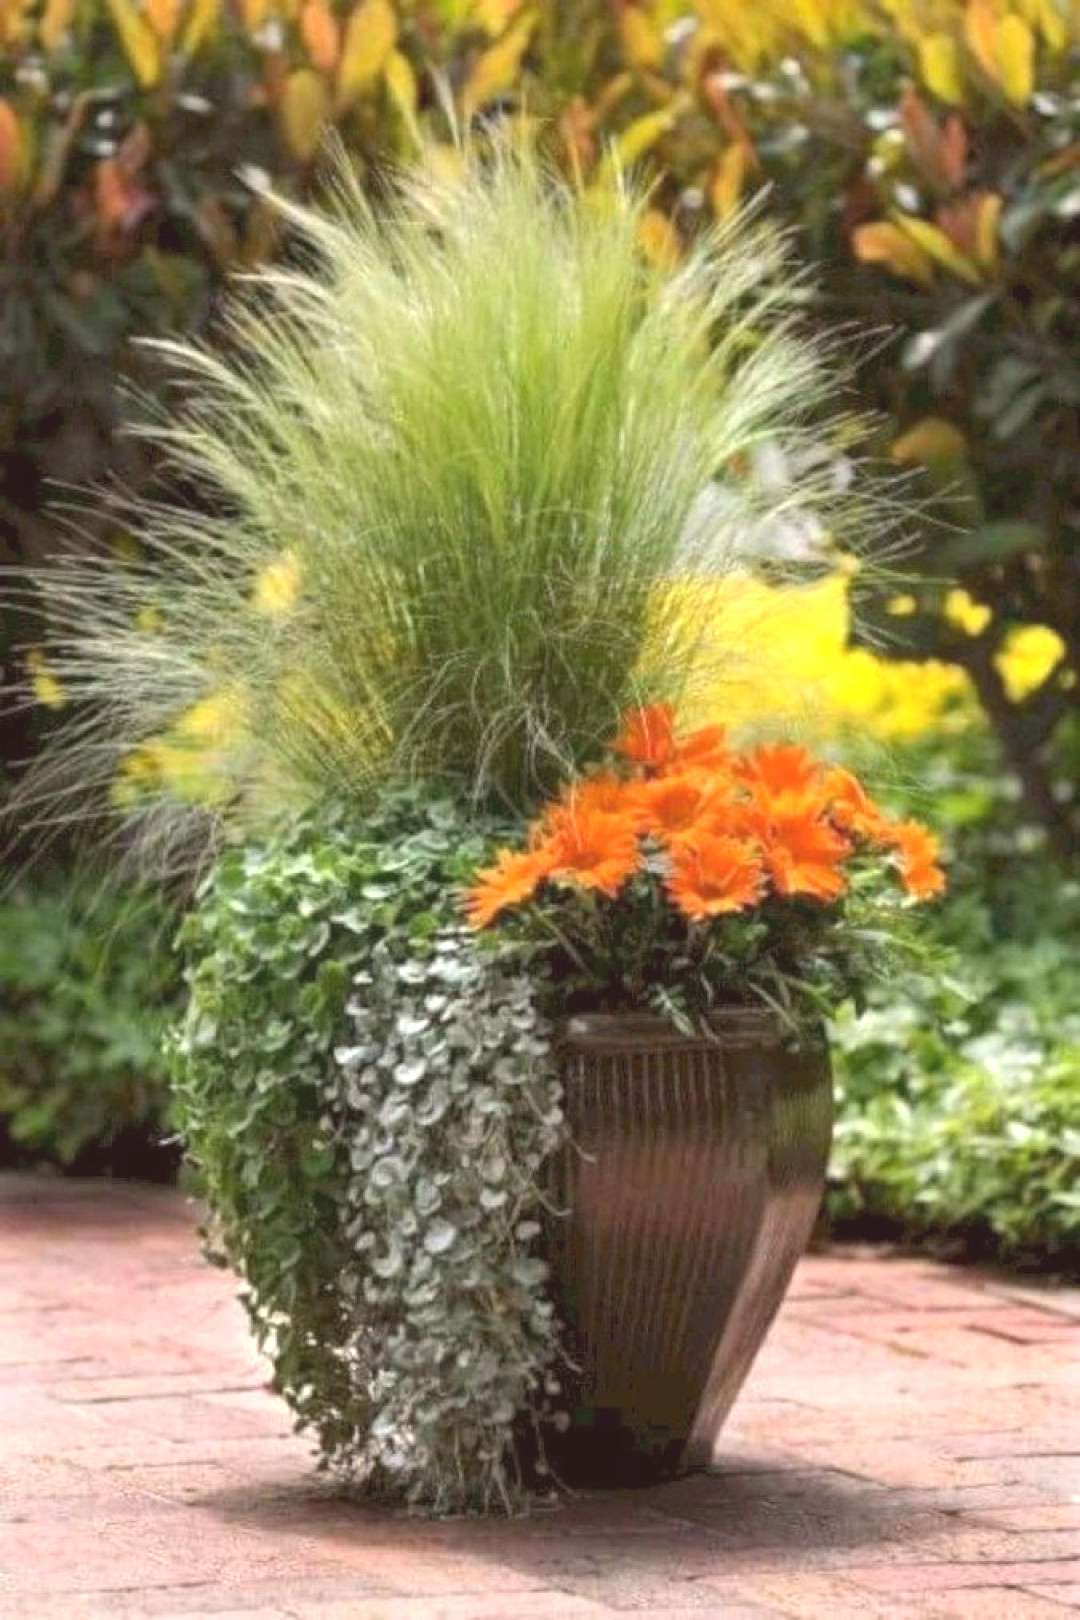 65 Stunning Fall Planters for Easy Garden Fall Decorations -  -  St... -  65 Stunning Fall Planters